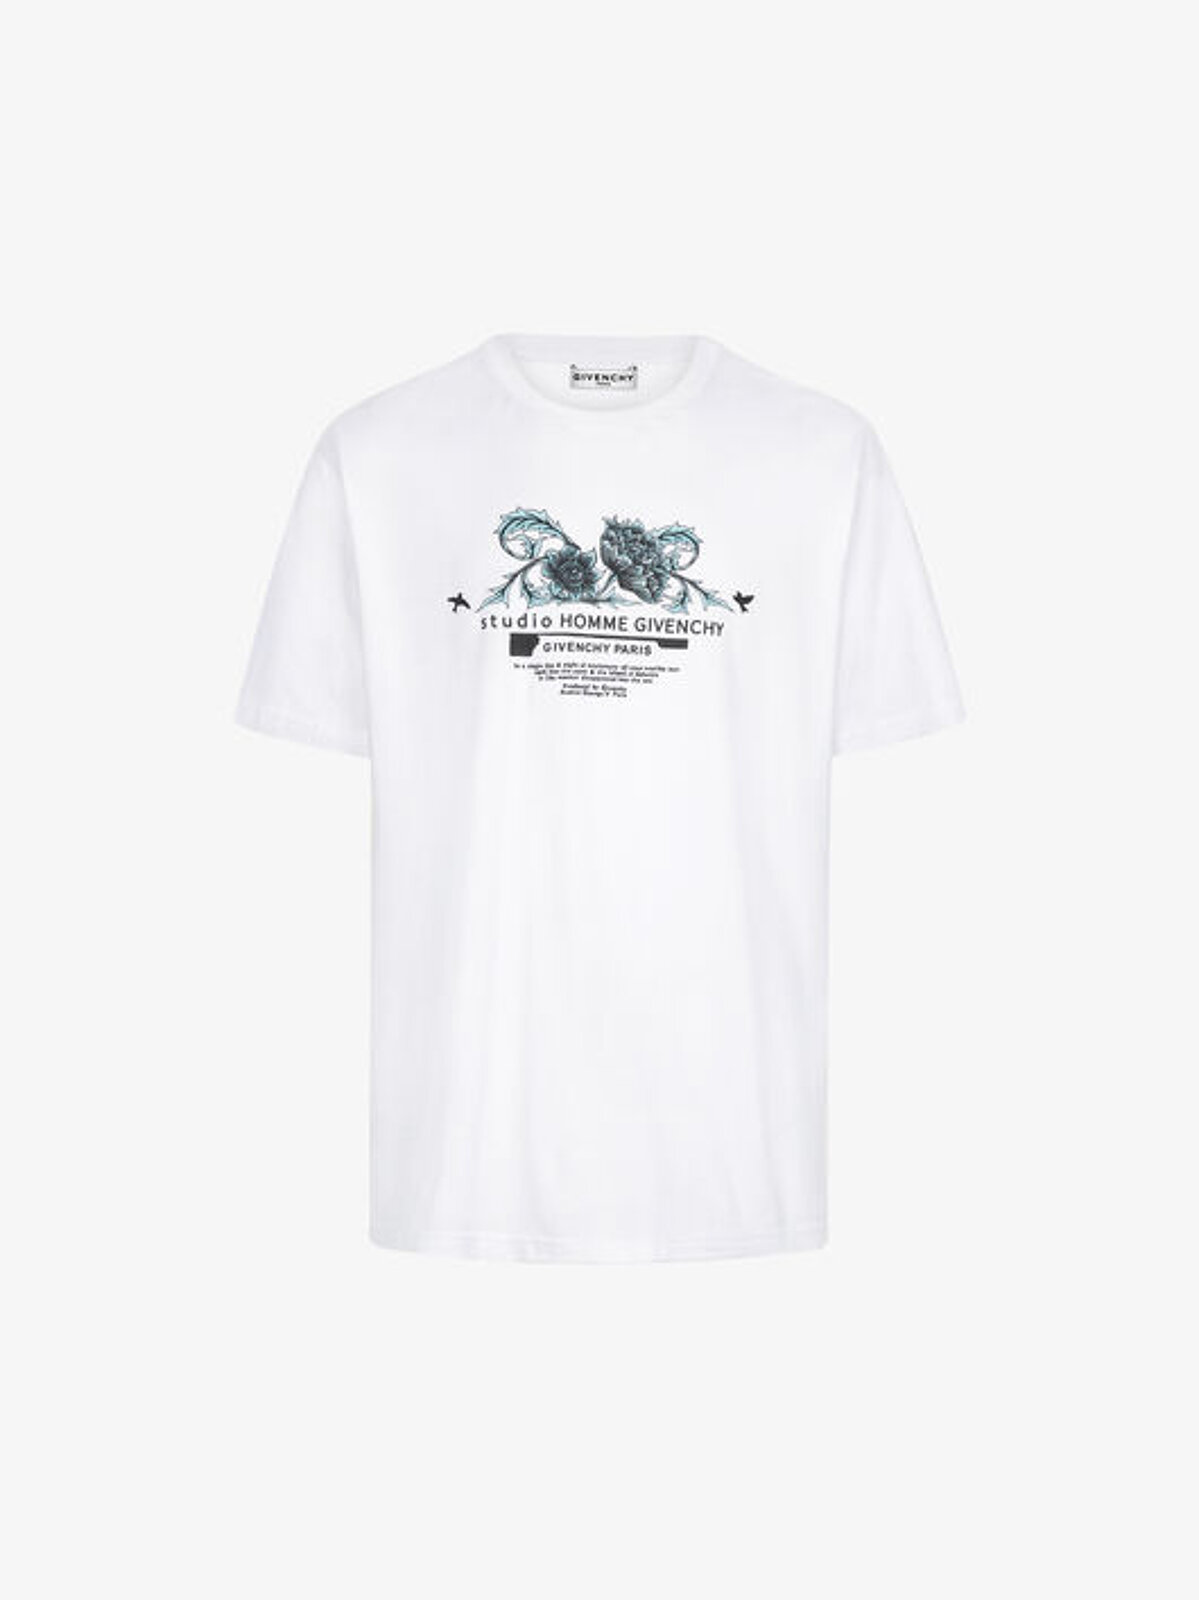 Studio Homme floral print T-shirt - Givenchy